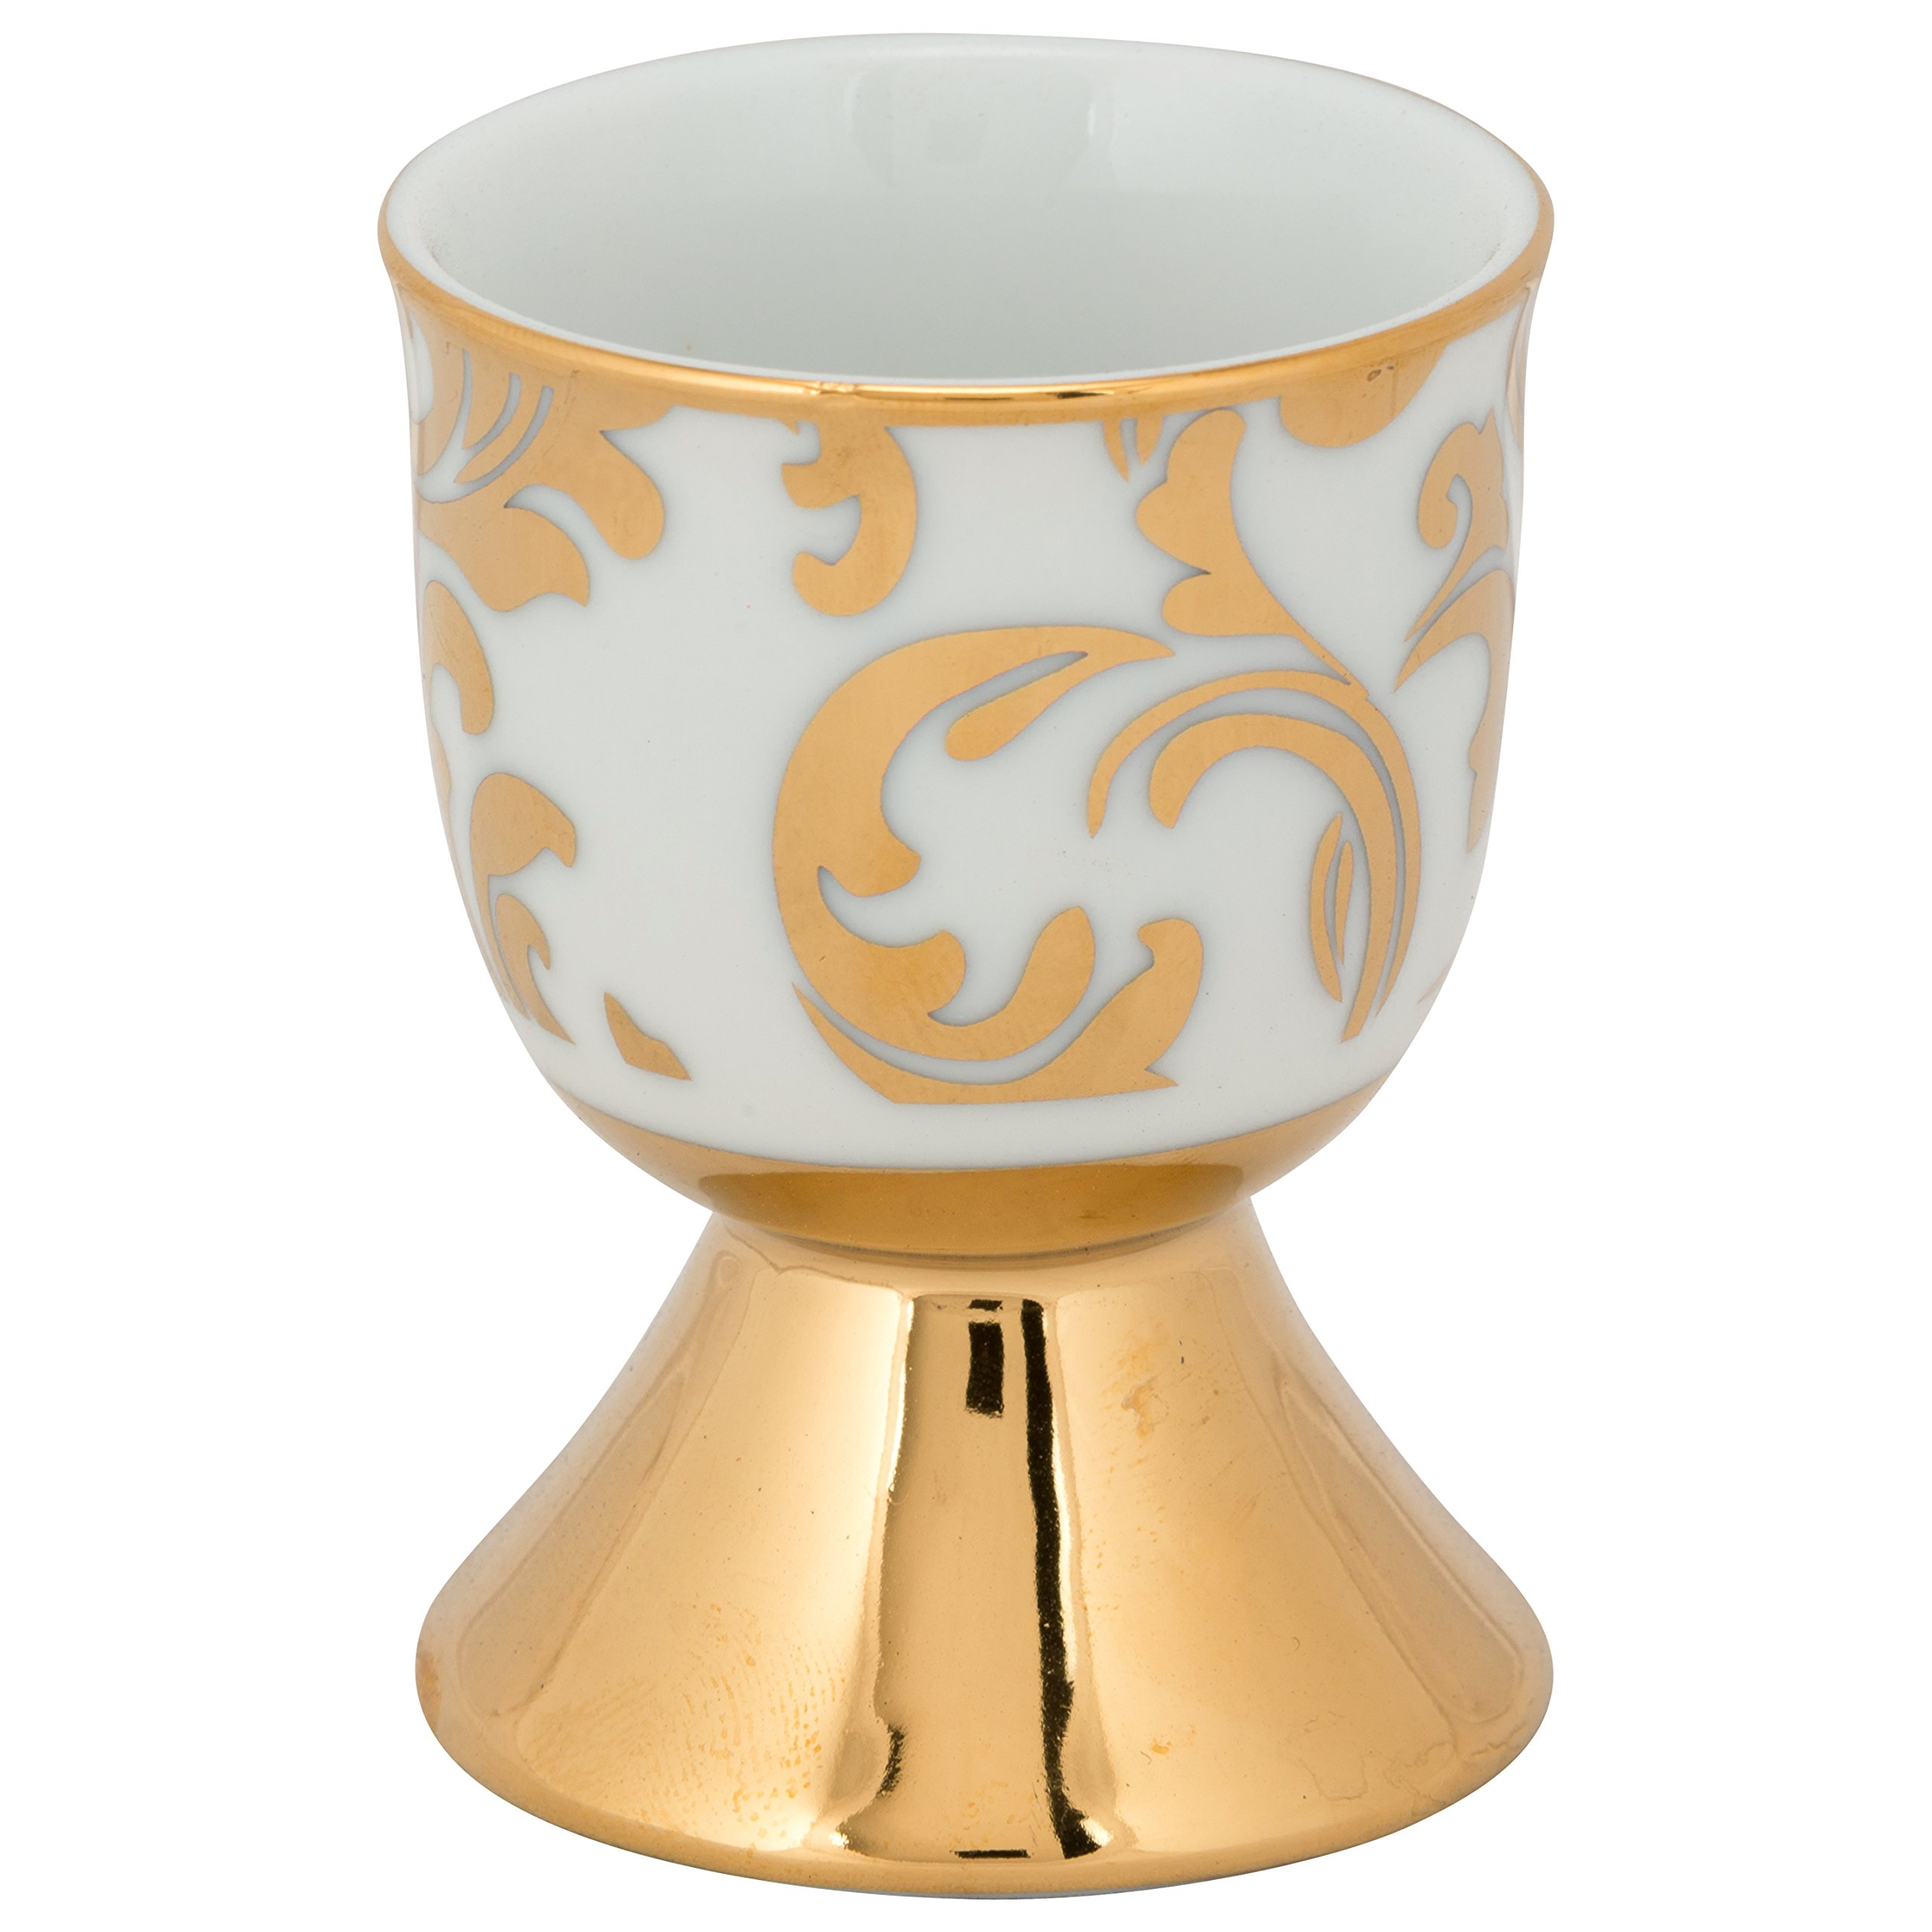 10 Strawberry Street S4EGGC-DAMSK Damask Egg Cup (Set of 4), Gold